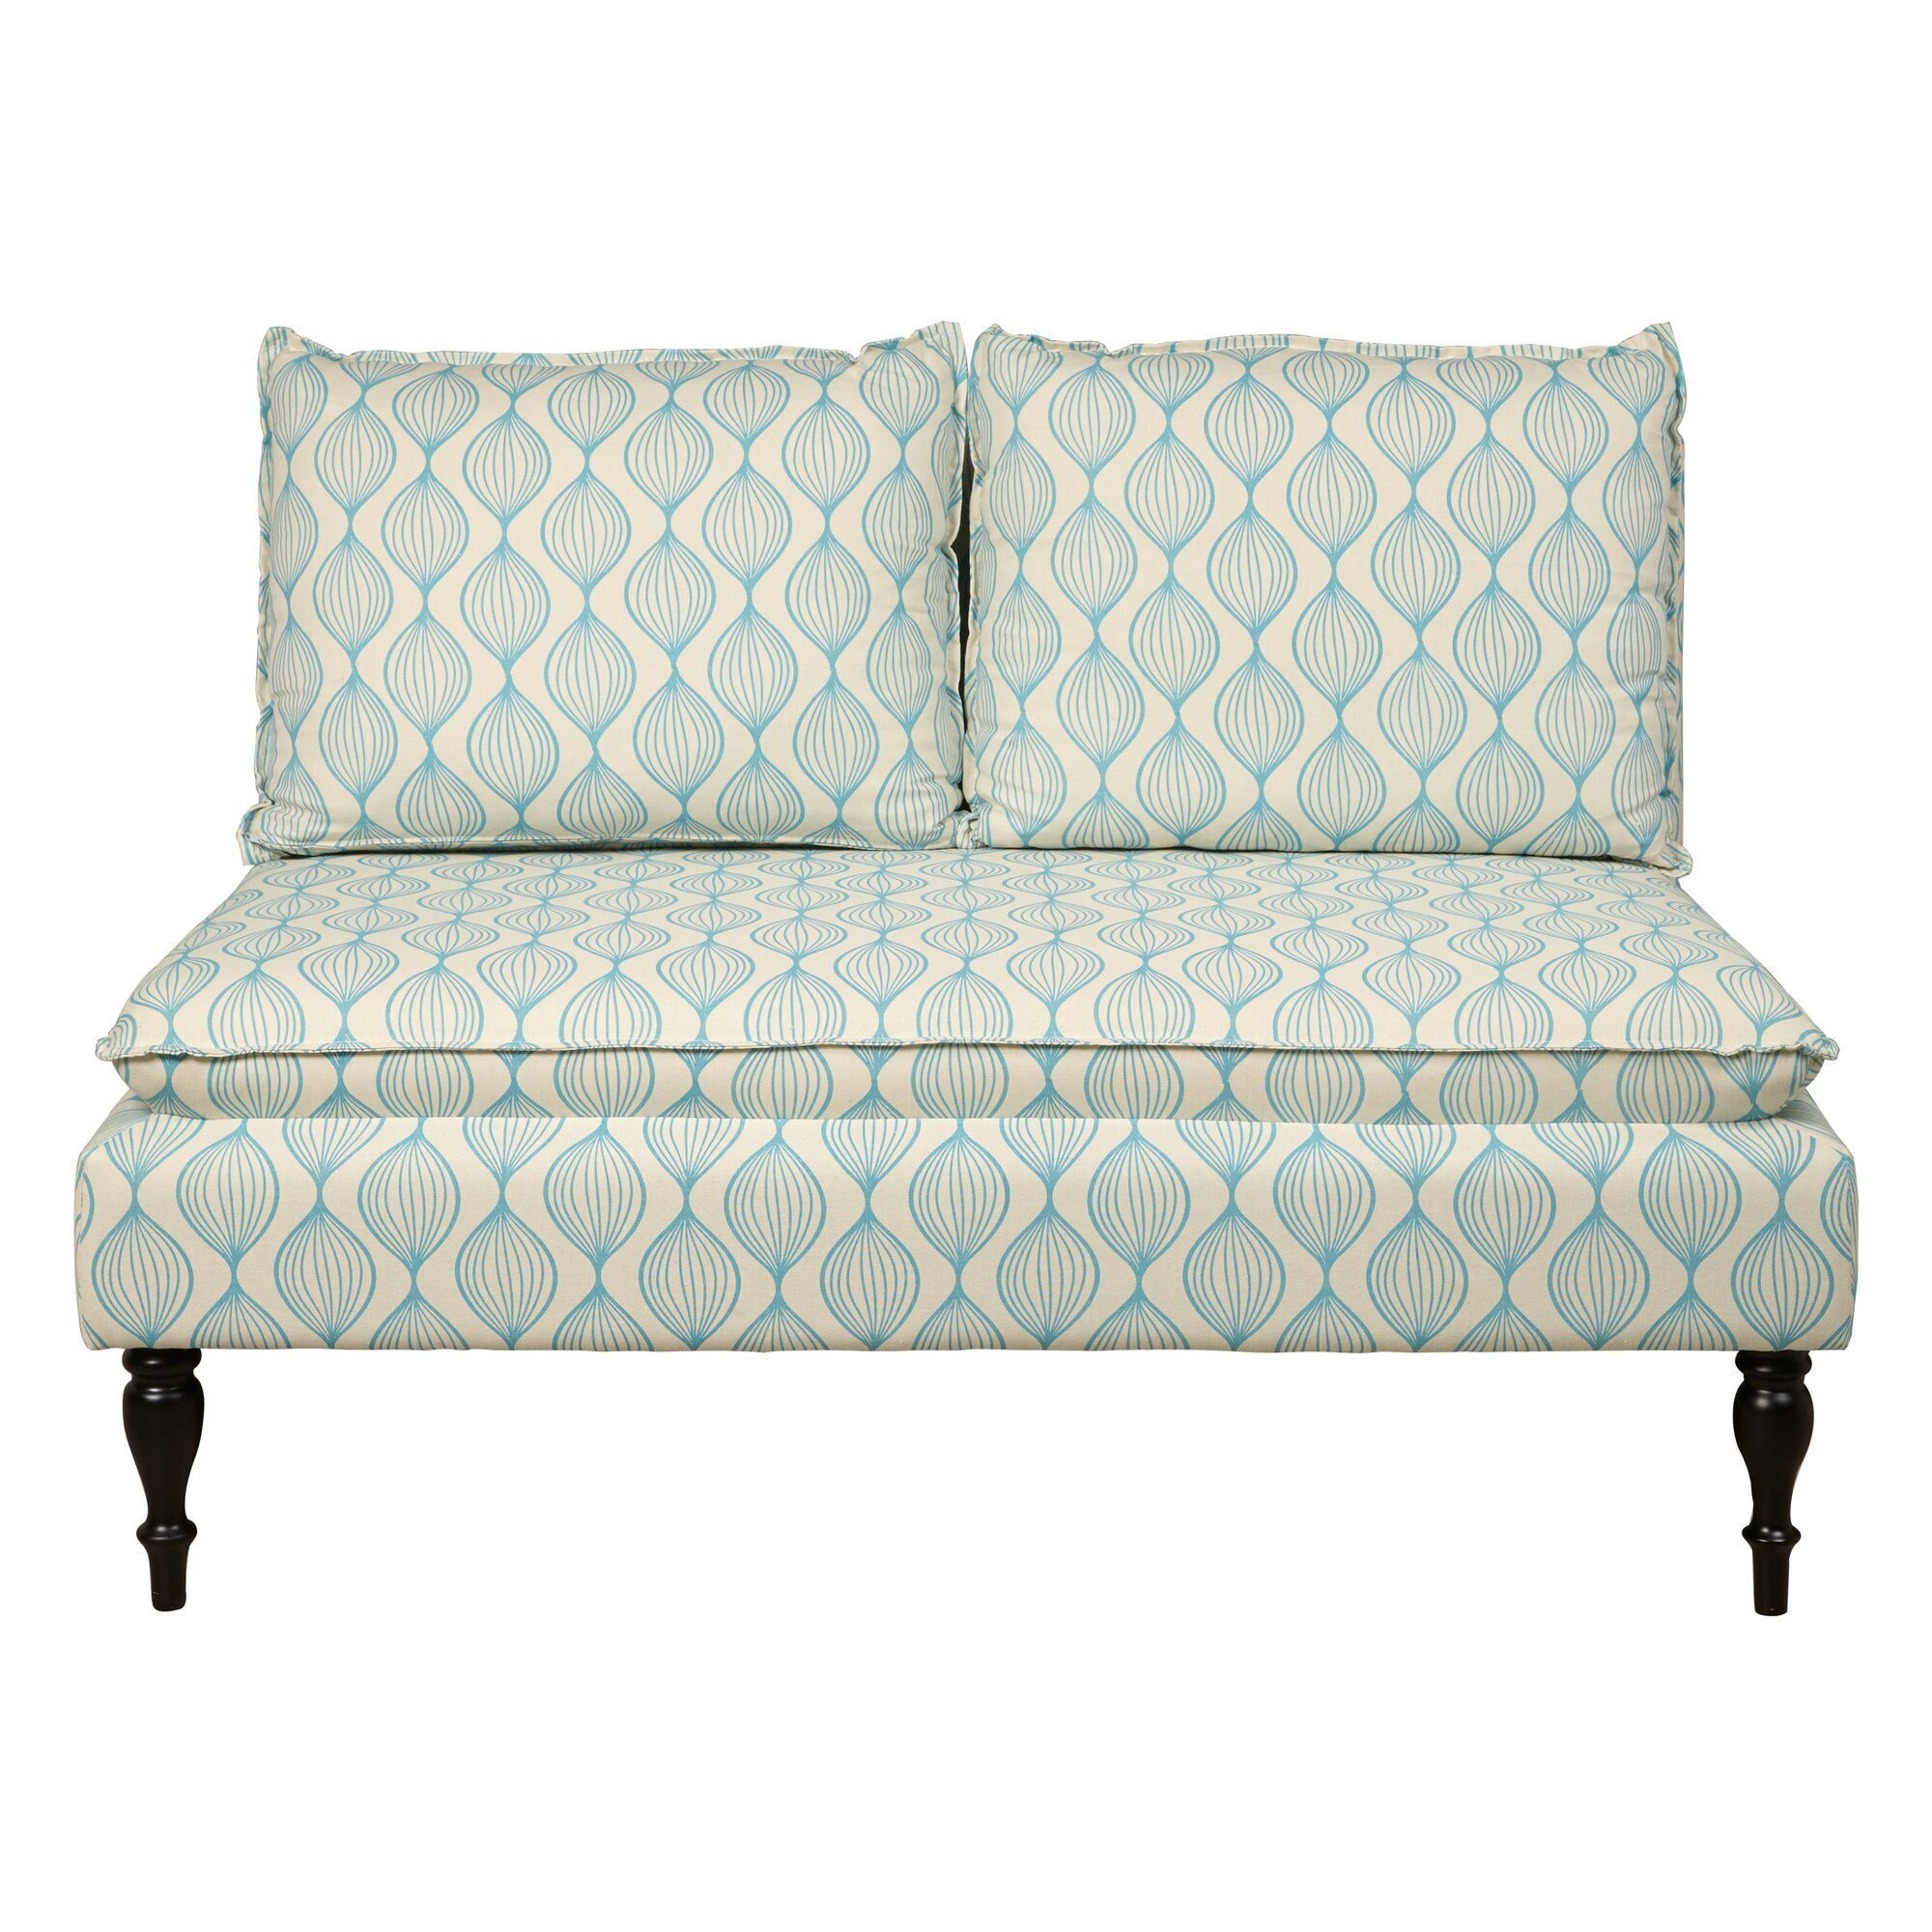 Banquette Couch: PRI Upholstered Graphic Print Banquette Sofa & Reviews